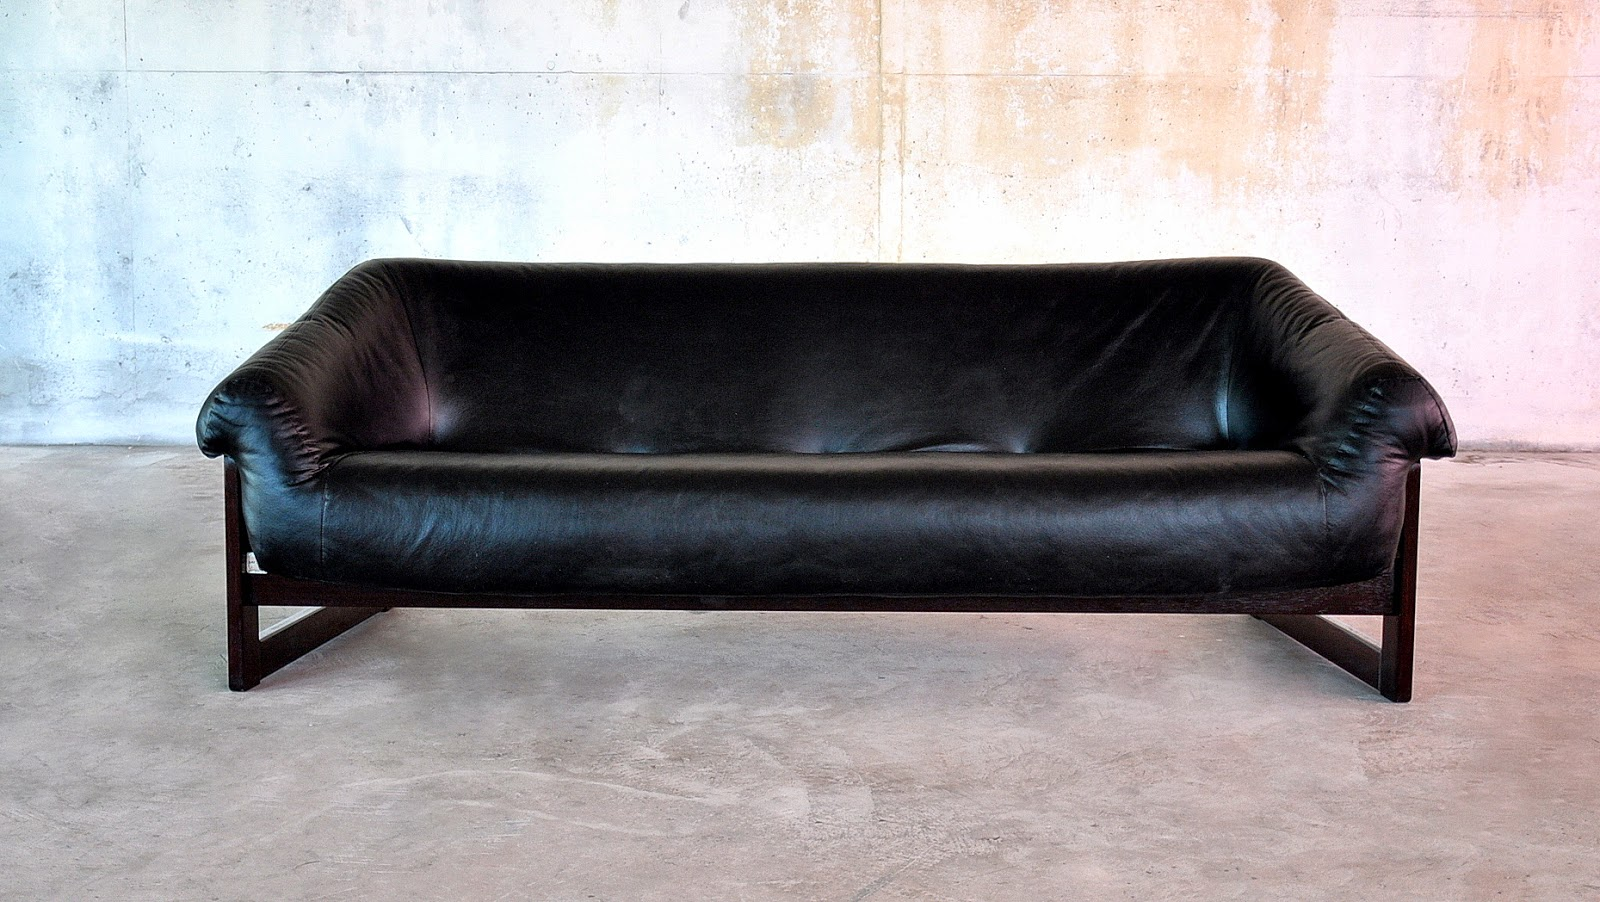 percival lafer sofa extra large chair select modern